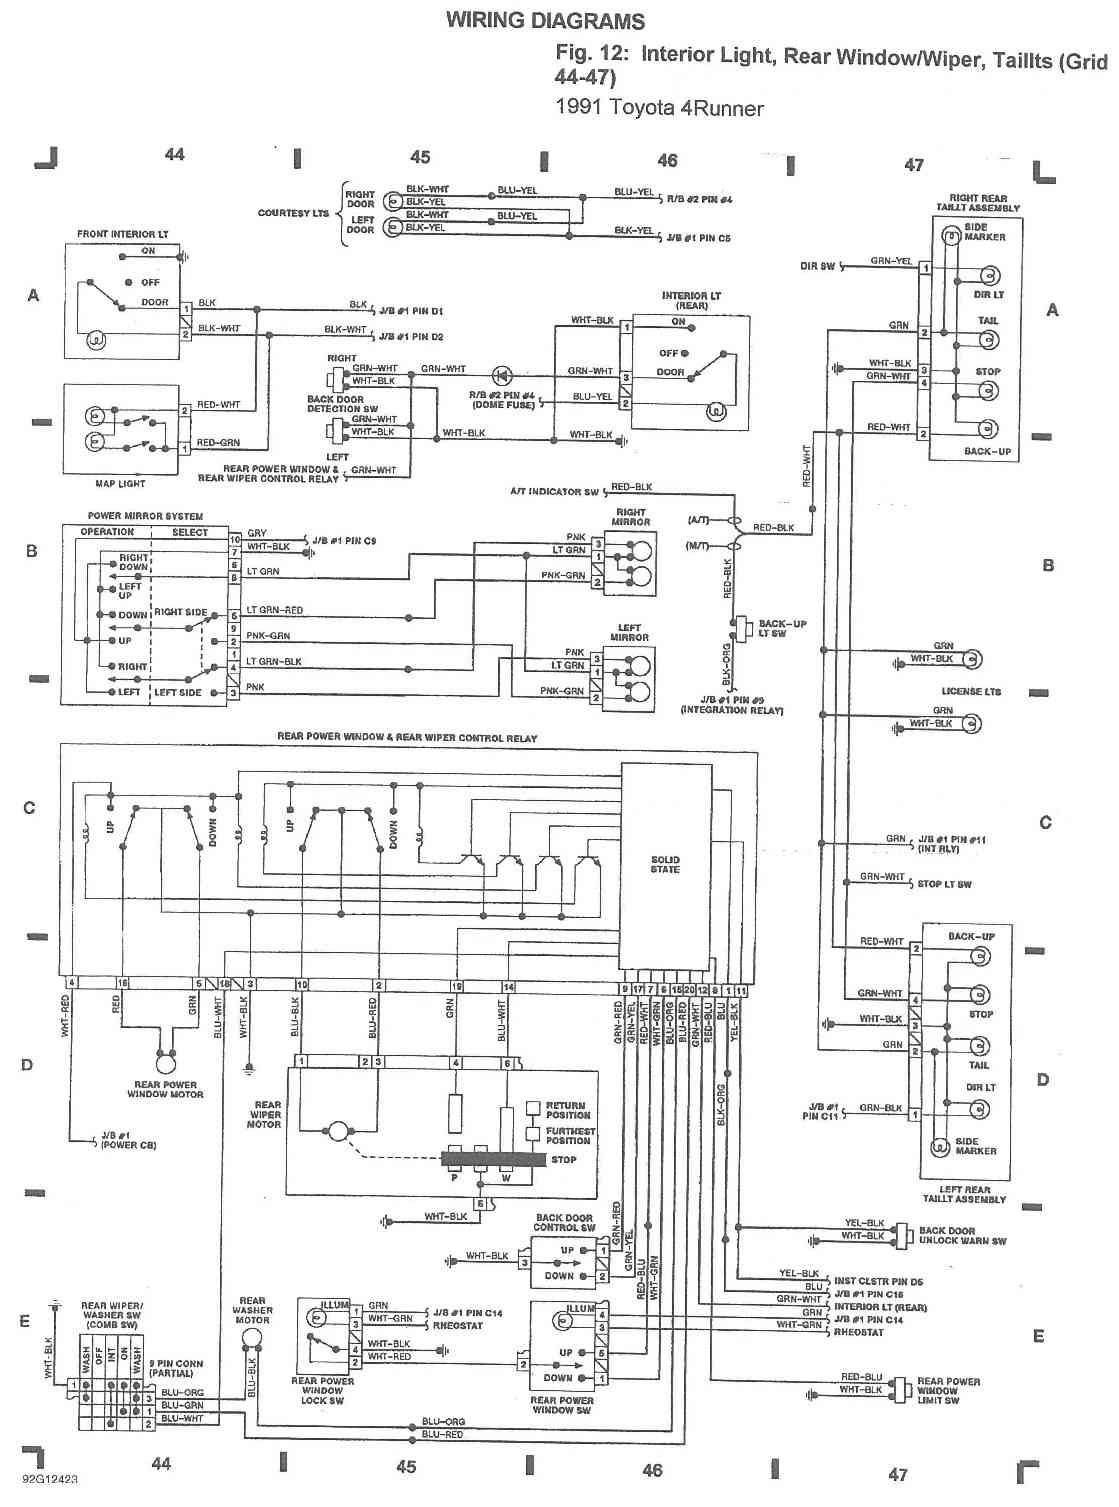 hight resolution of 1990 toyota 4runner fuse diagram wiring diagrams posts 1990 toyota pickup fuse diagram 1990 toyota 4runner fuse diagram